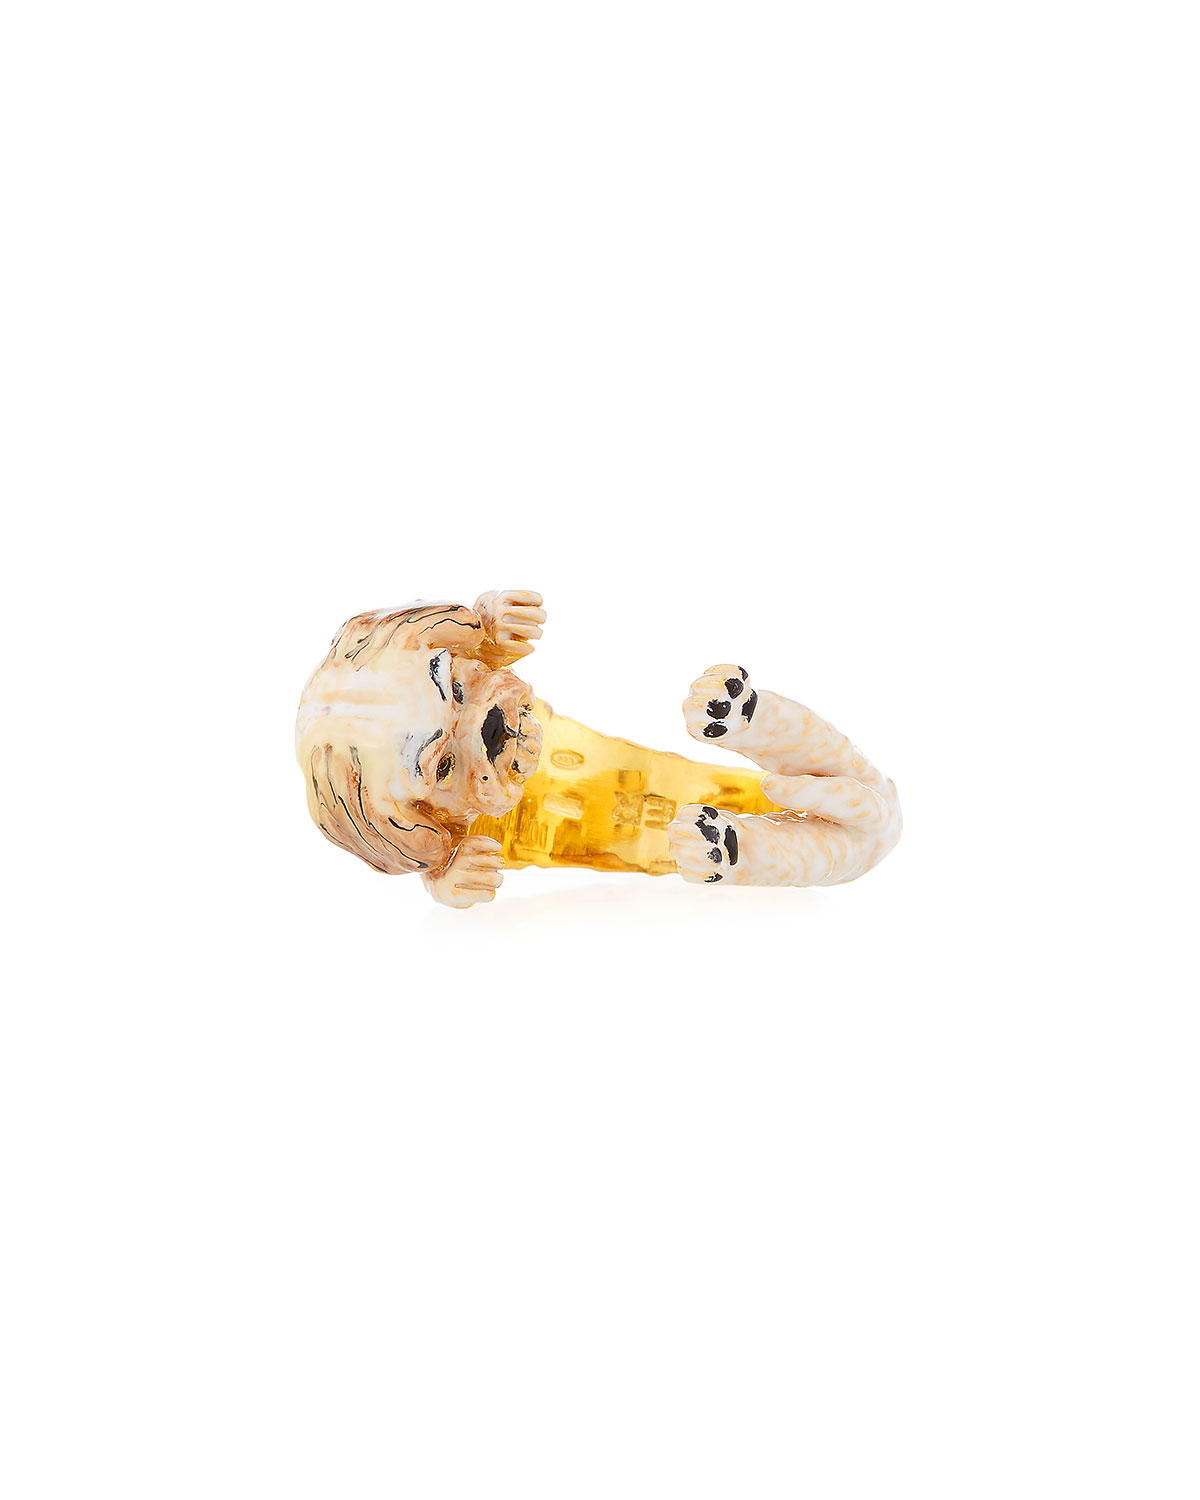 VISCONTI & DU REAU SHIH TZU PLATED ENAMEL DOG HUG RING, SIZE 6